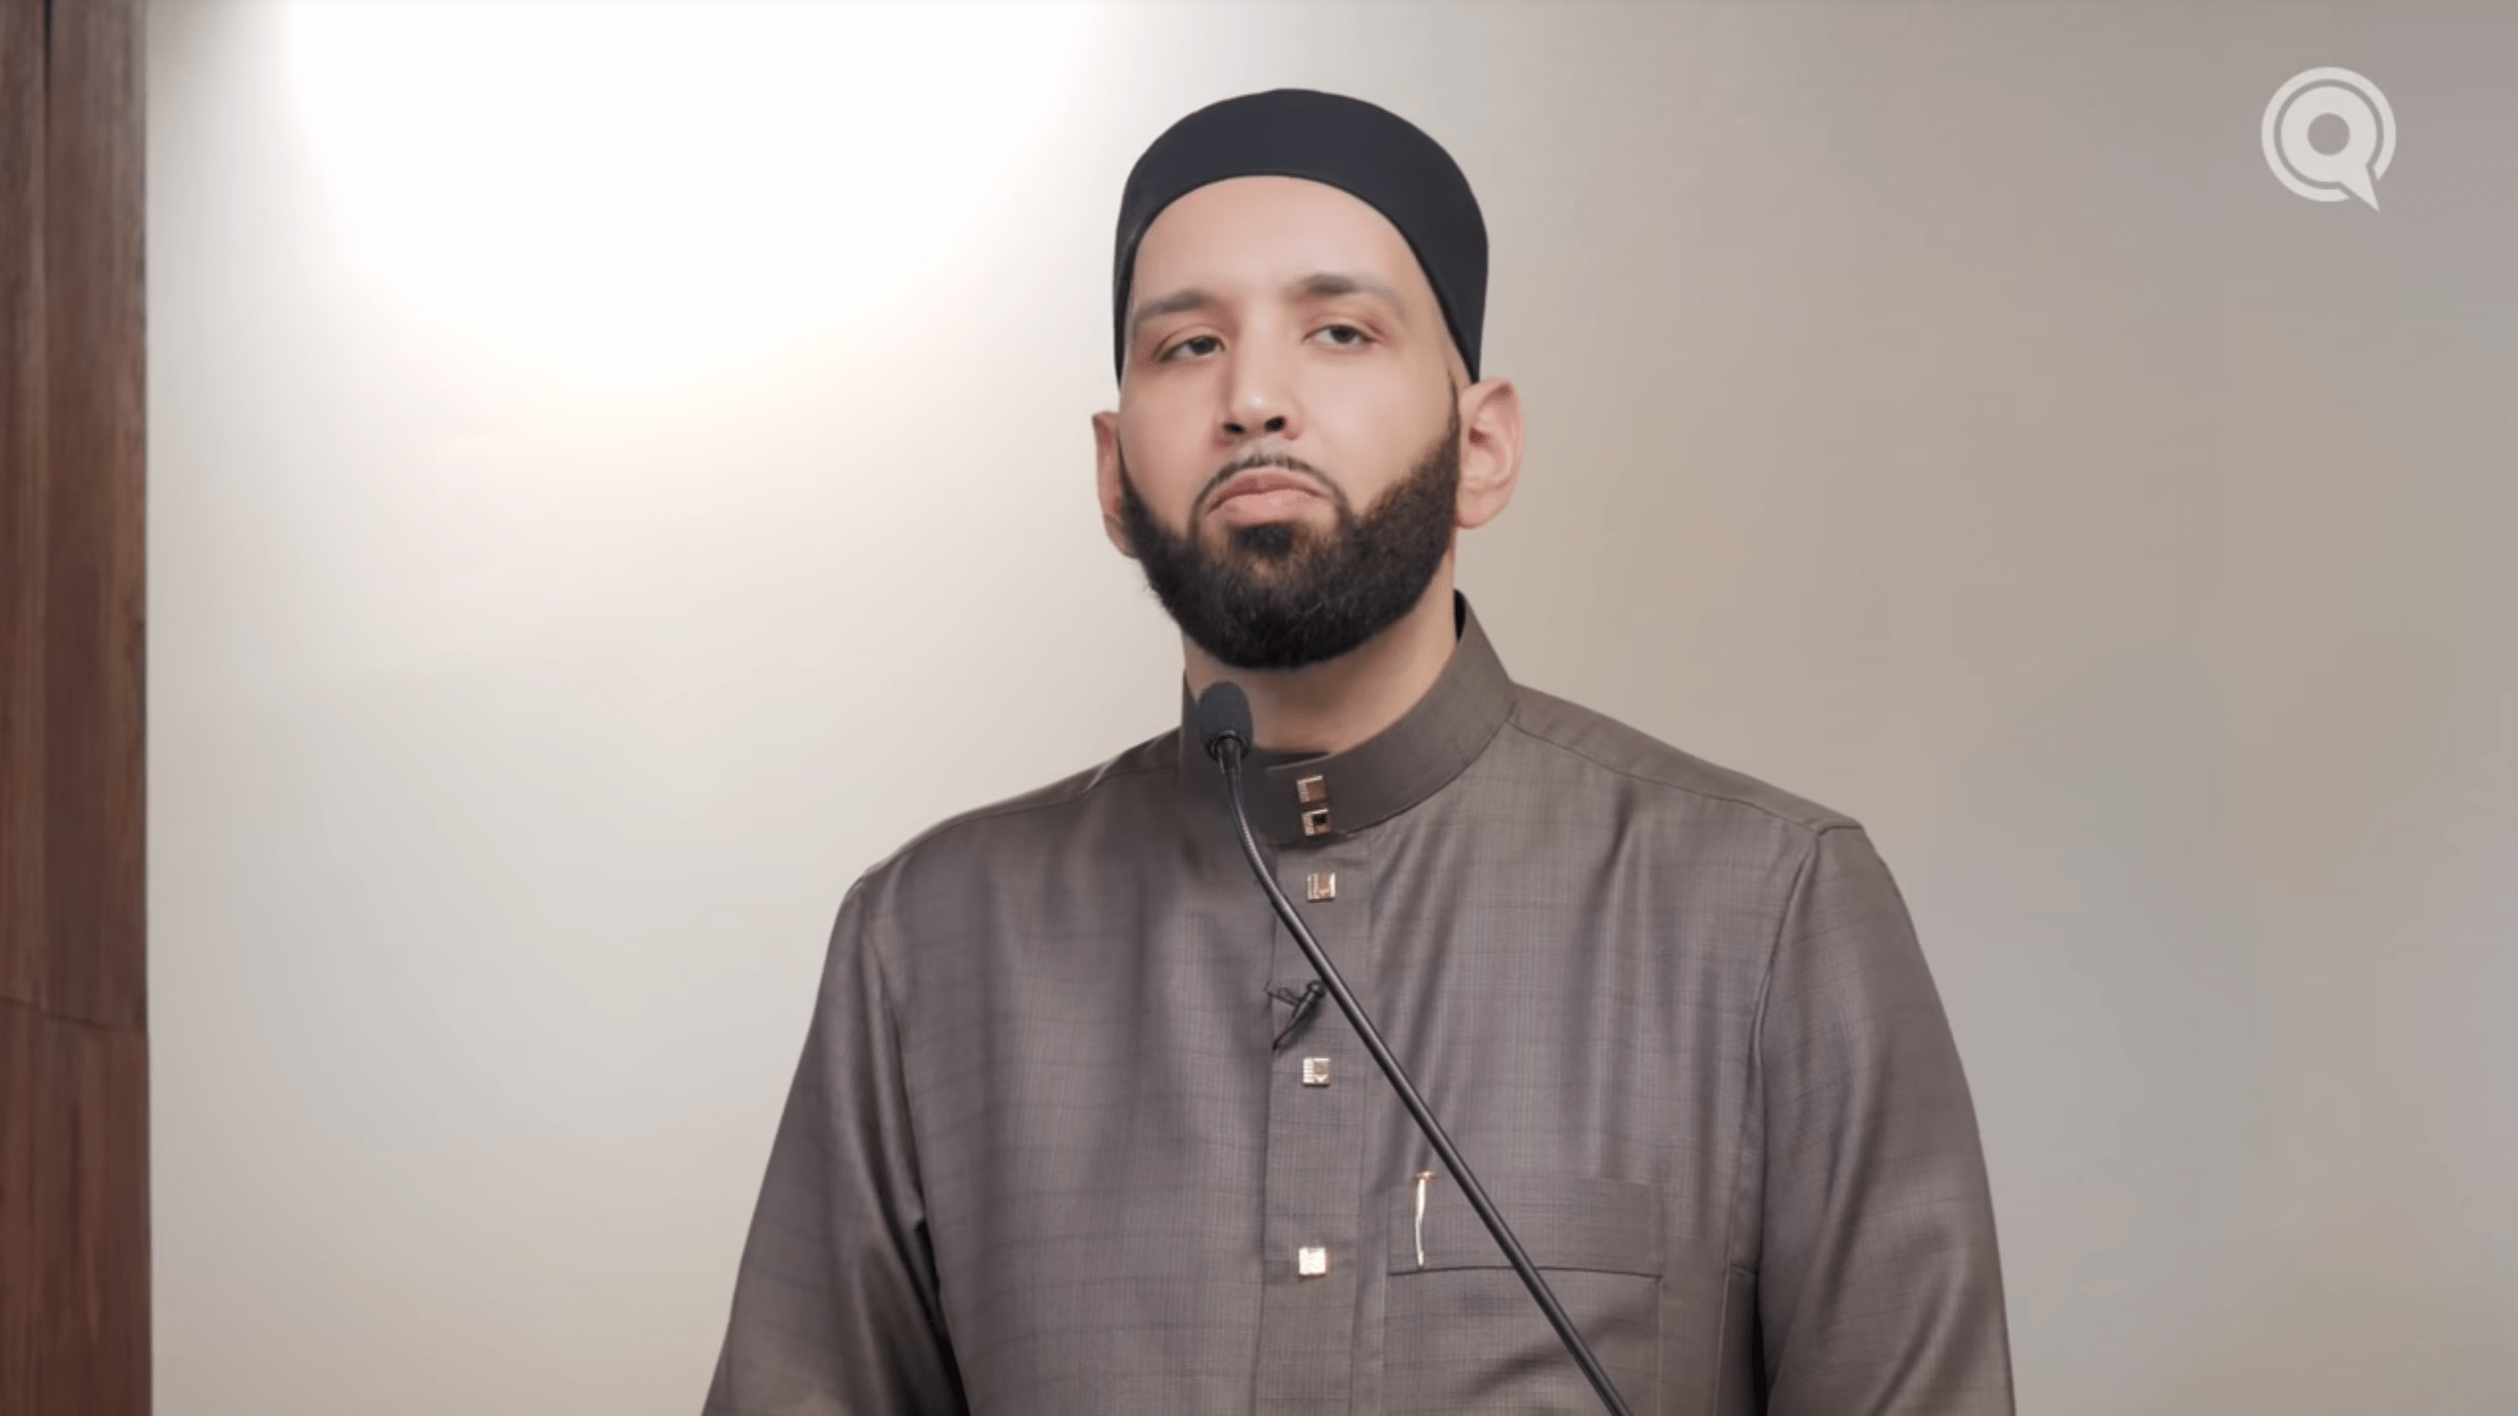 Omar Suleiman – Authentically Reclaiming the Narrative about Islam and Muslims